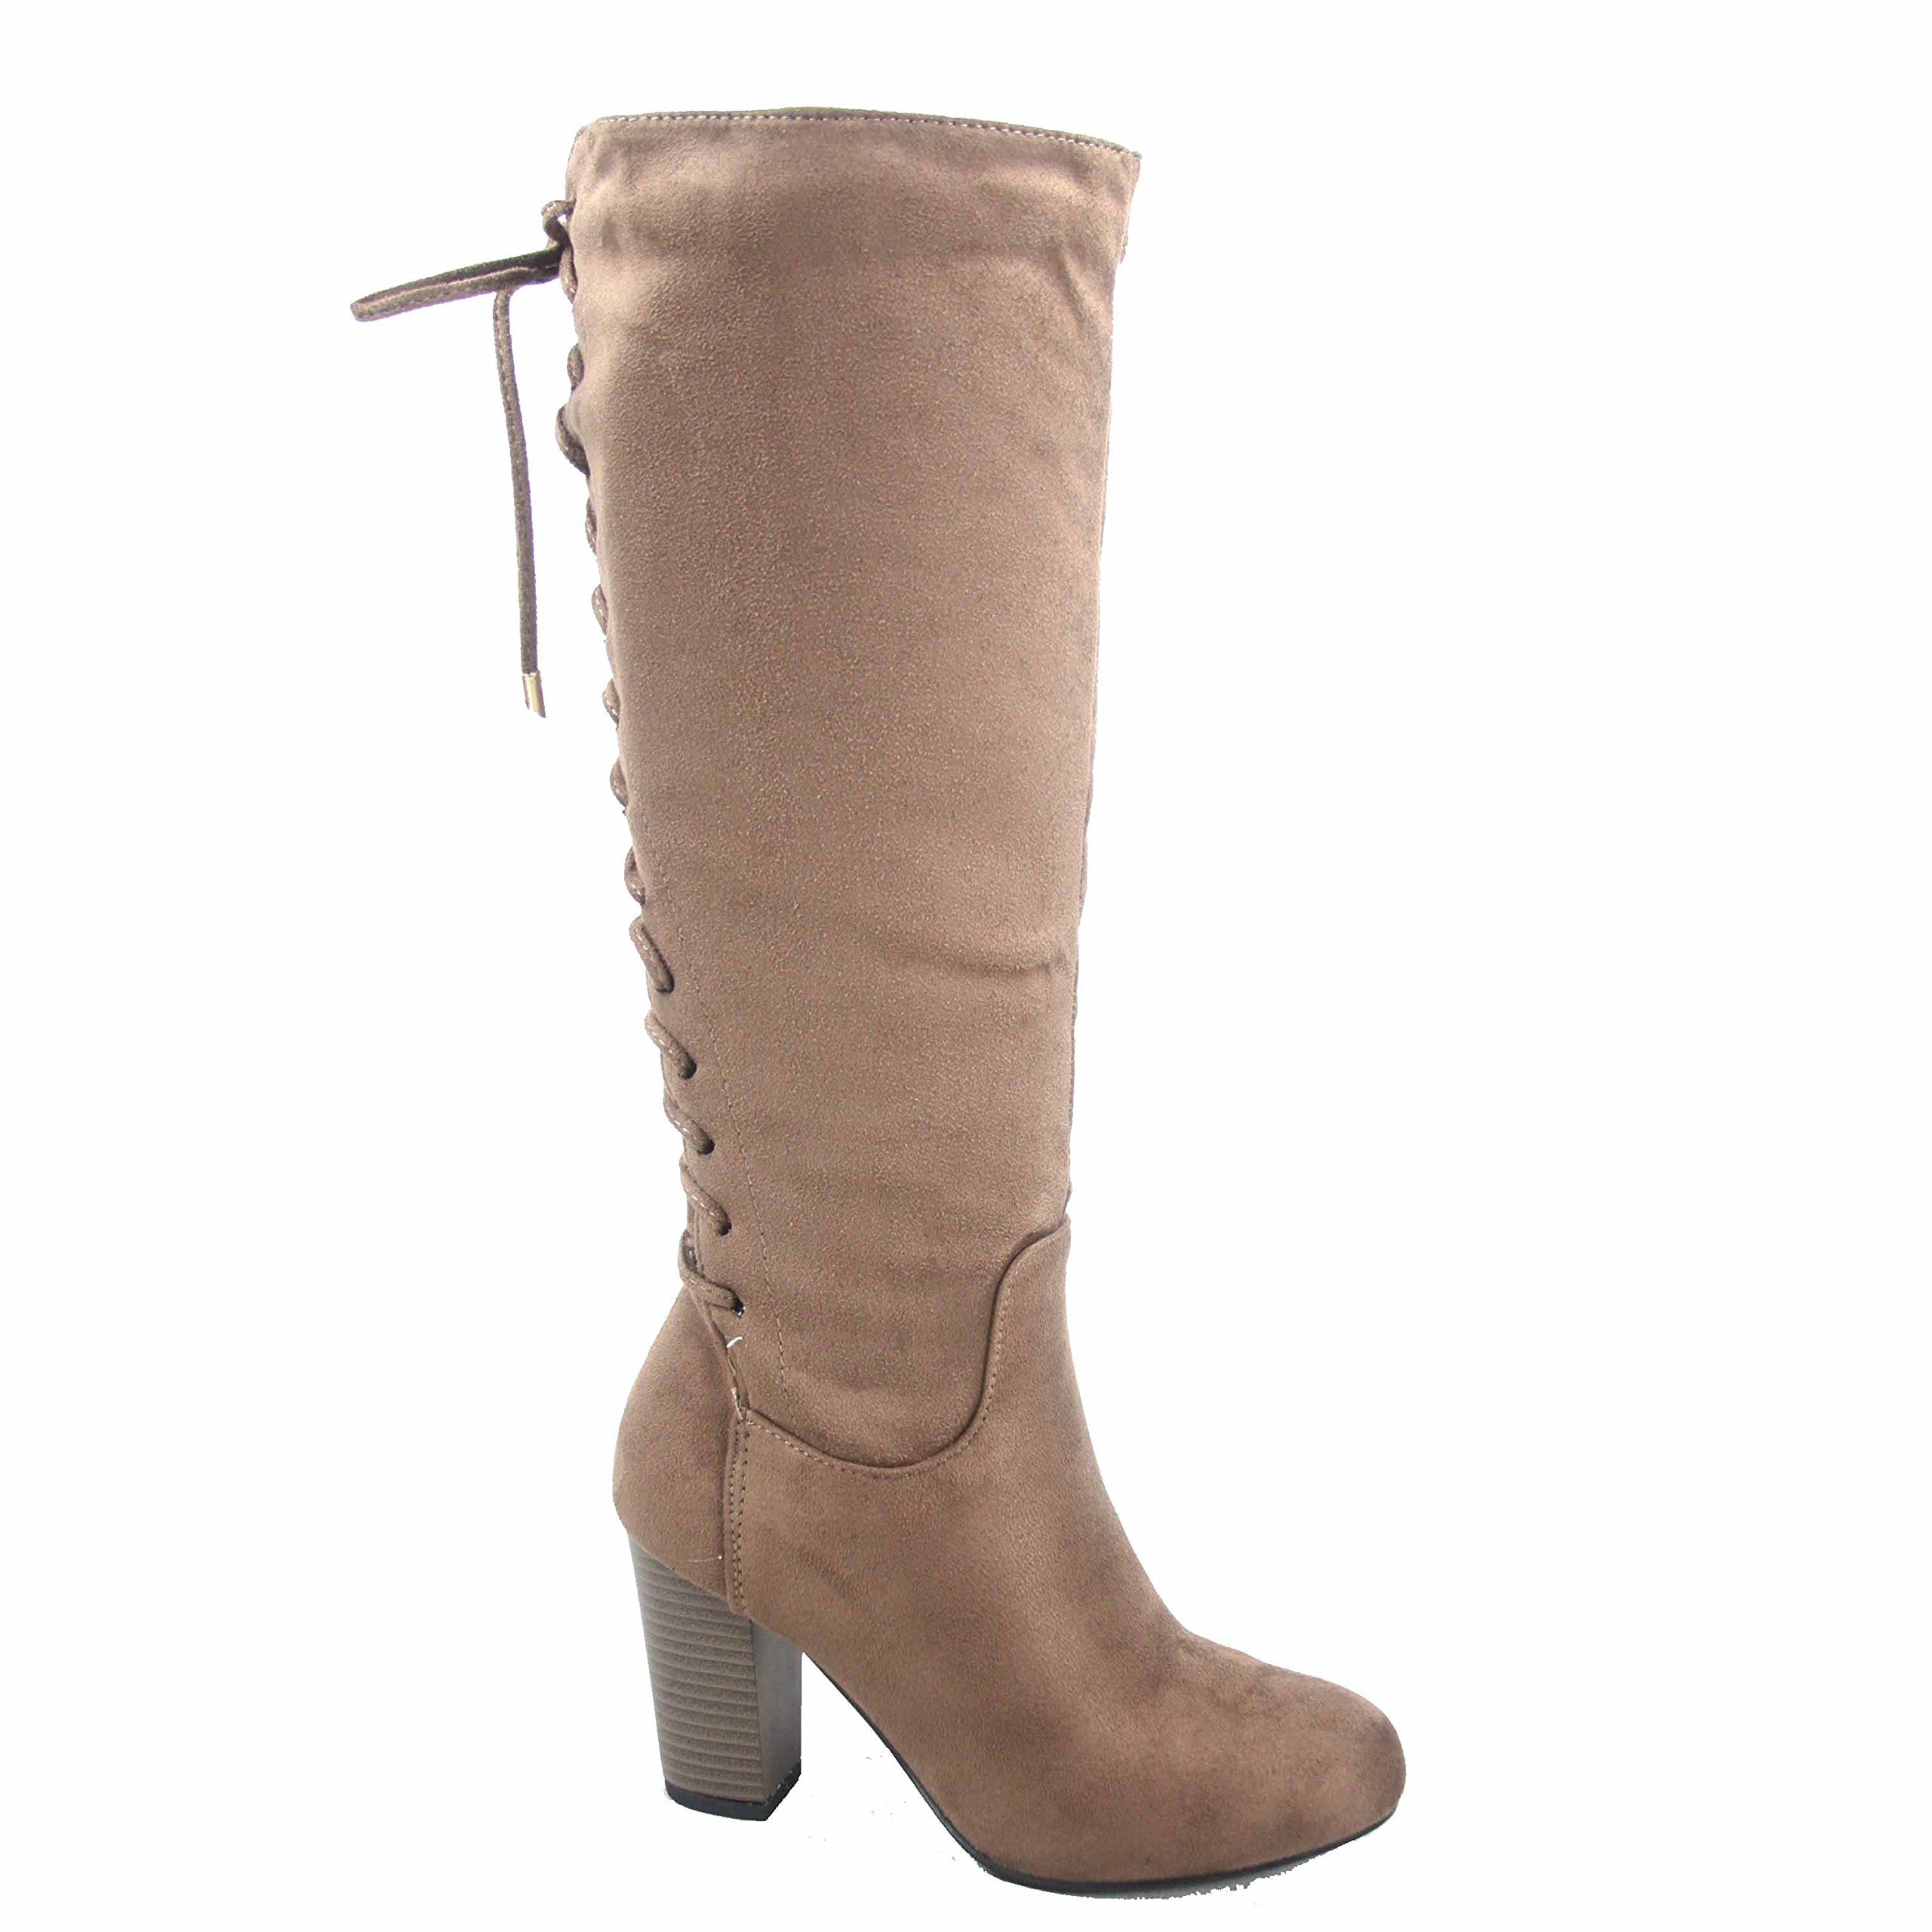 Top Moda Sophie-30 Women's Back Lace Up Chunky Heel Zipper Mid-Calf Boots Shoes (6, Taupe)